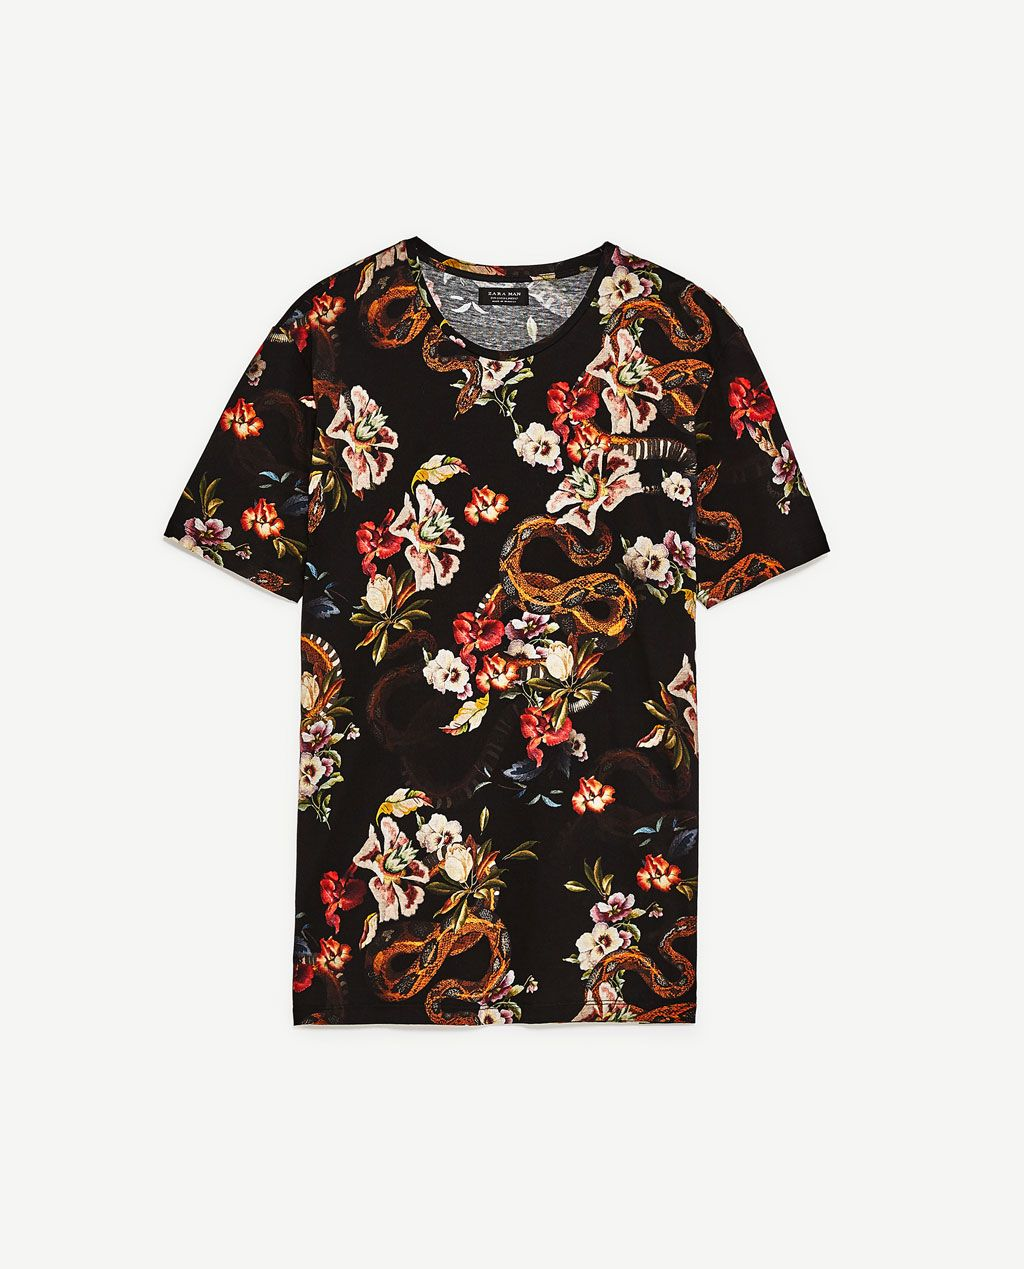 e05036dd4a30ac Image 8 of FLOWERS AND SNAKES T-SHIRT from Zara   BLEK KLAUS STYLE ...